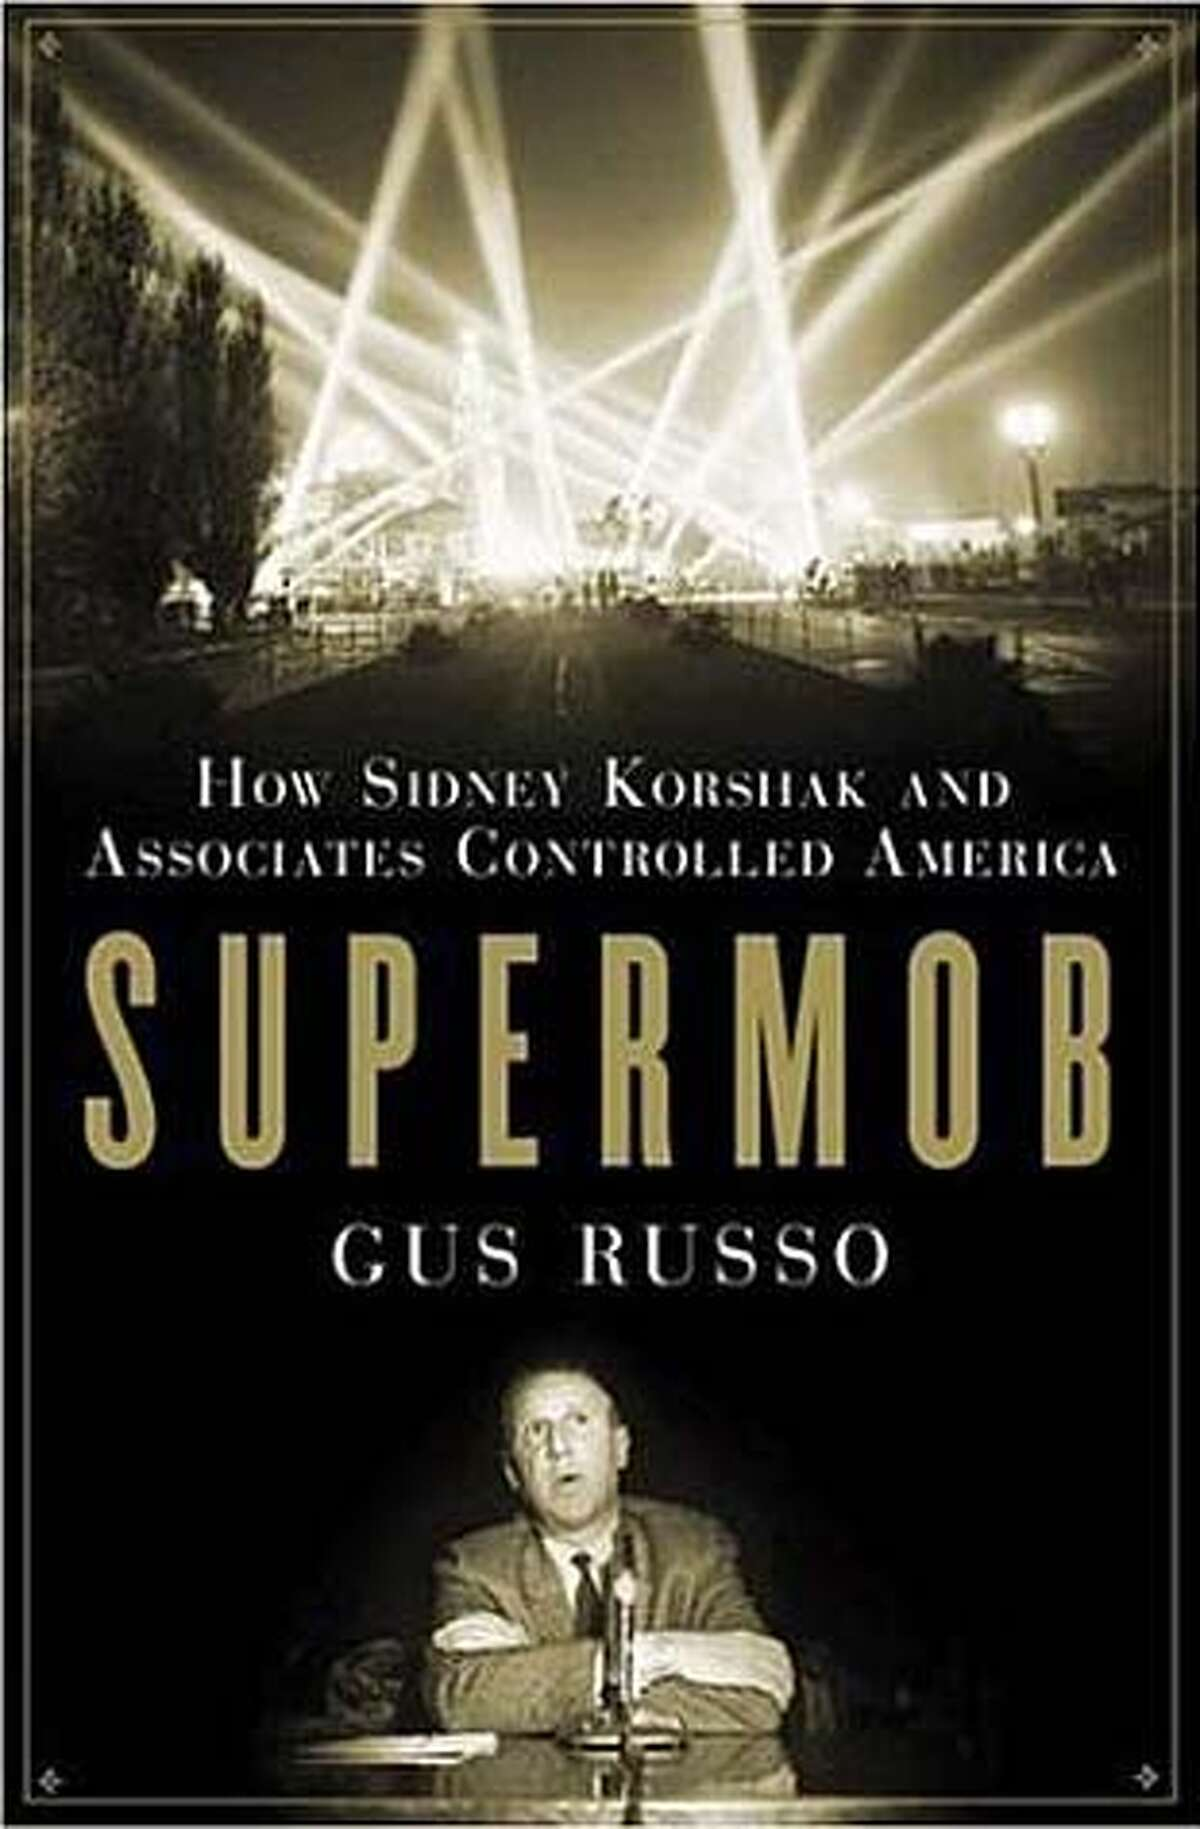 Cover art for Gus Russo's